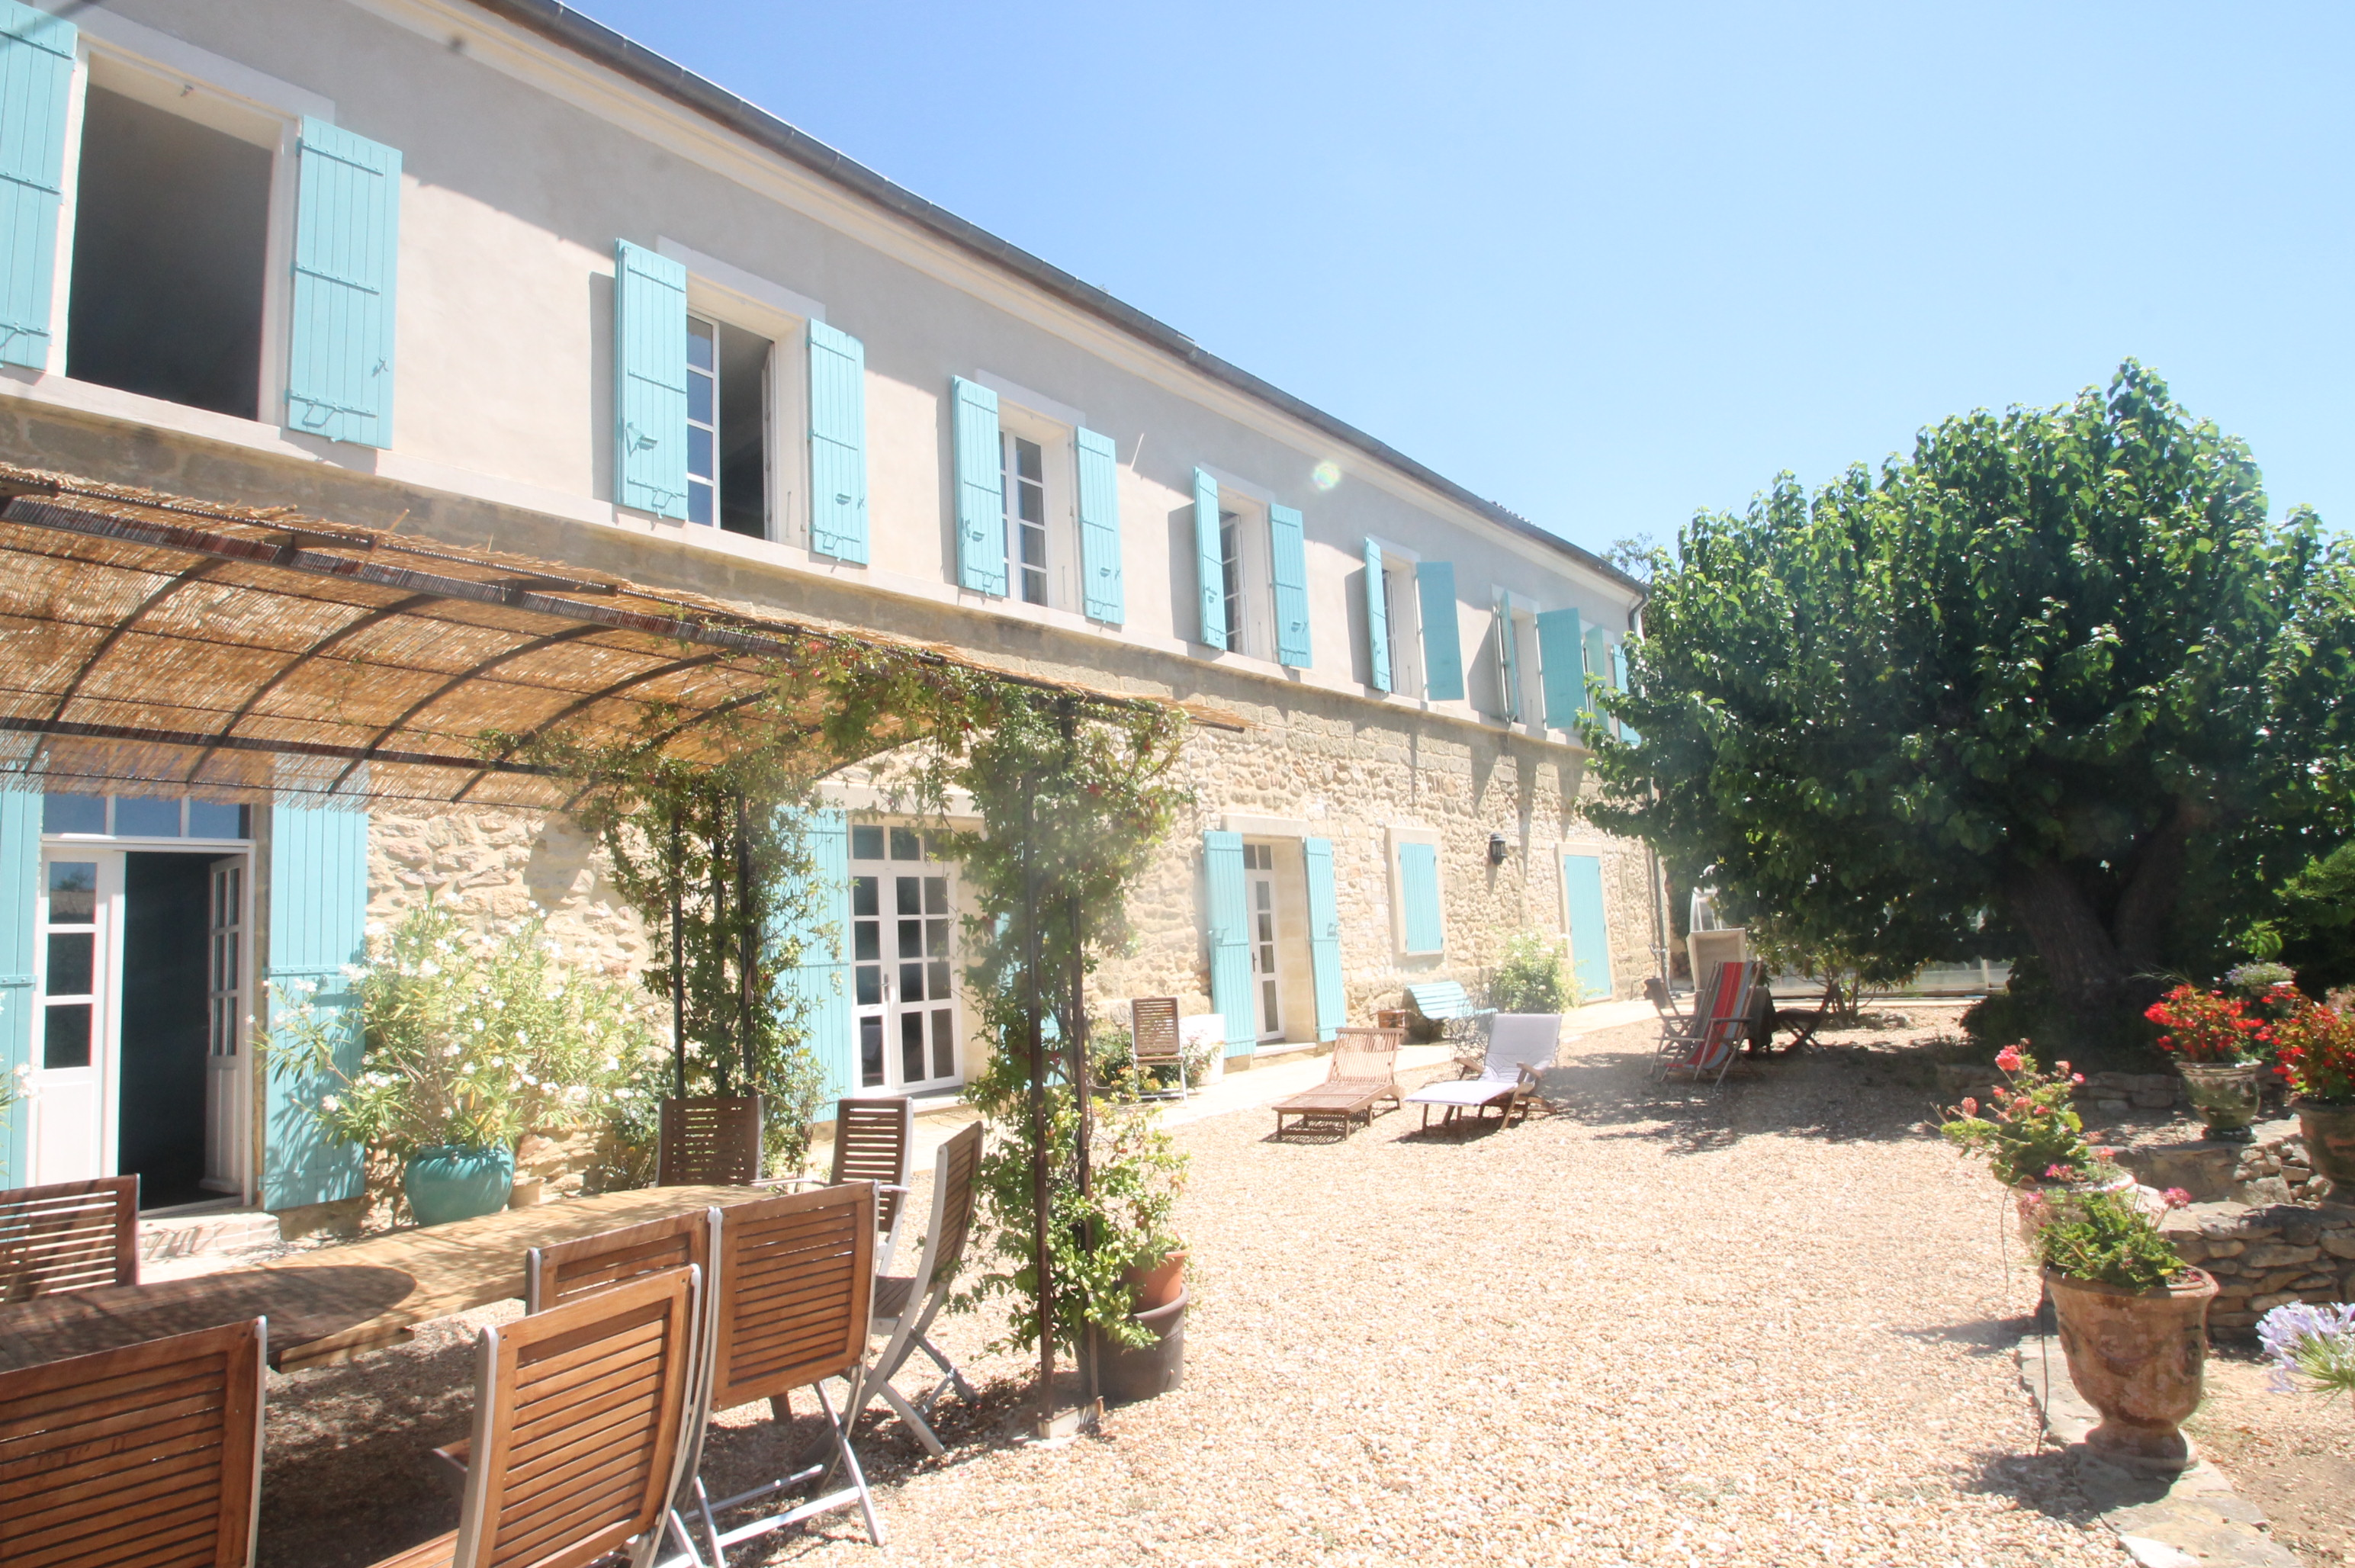 Single Family Home for Sale at MAISON DE FAMILLE PROCHE UZES Other Languedoc-Roussillon, Languedoc-Roussillon 30700 France